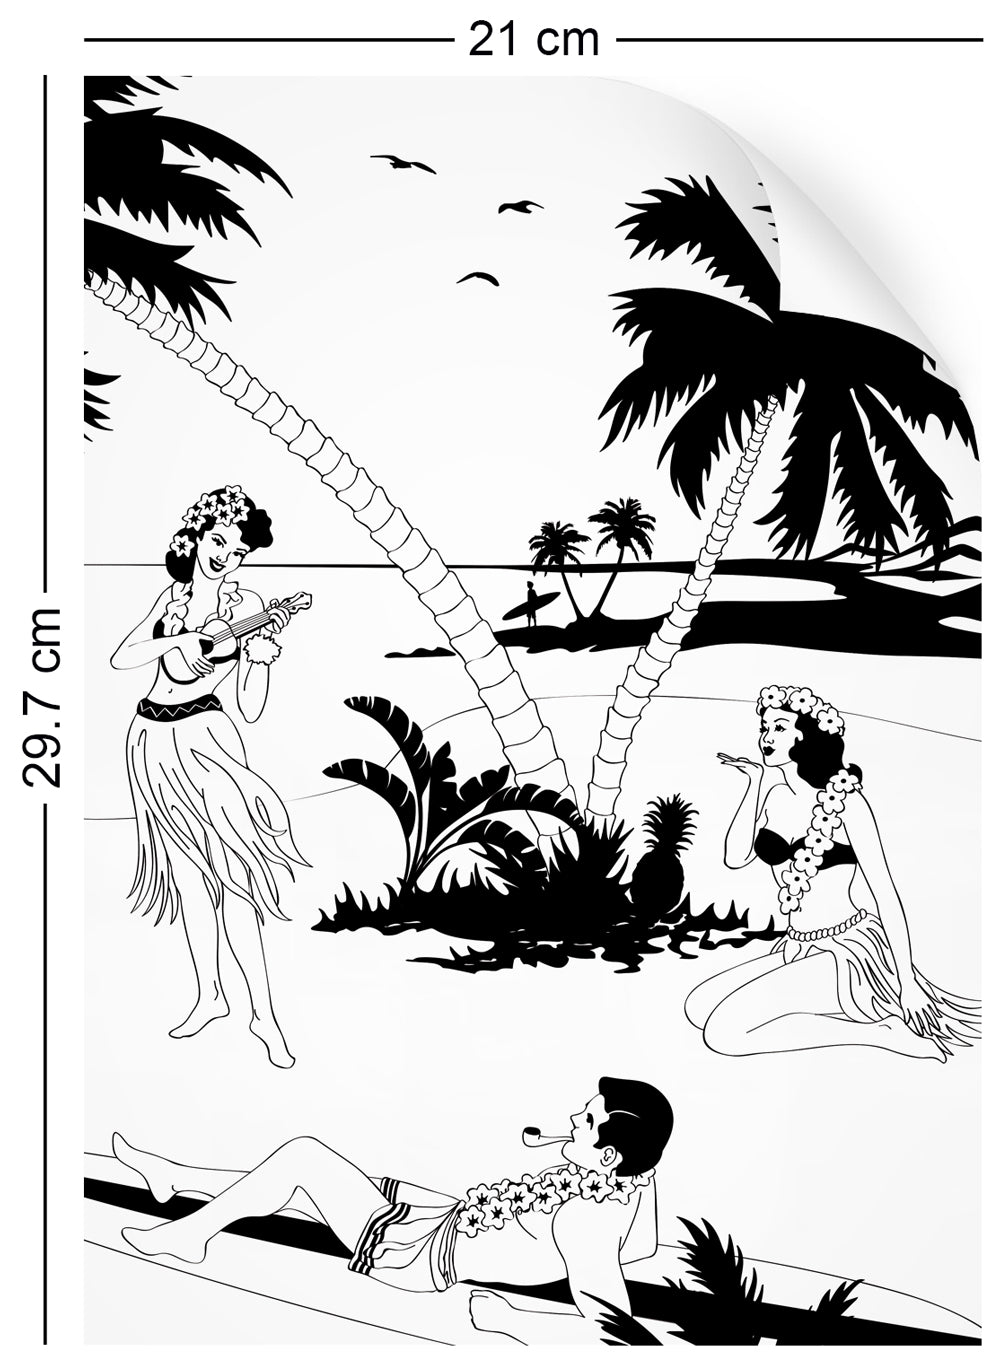 a4 wallpaper sample with Hawaiian surfers and hula girls design in black and white